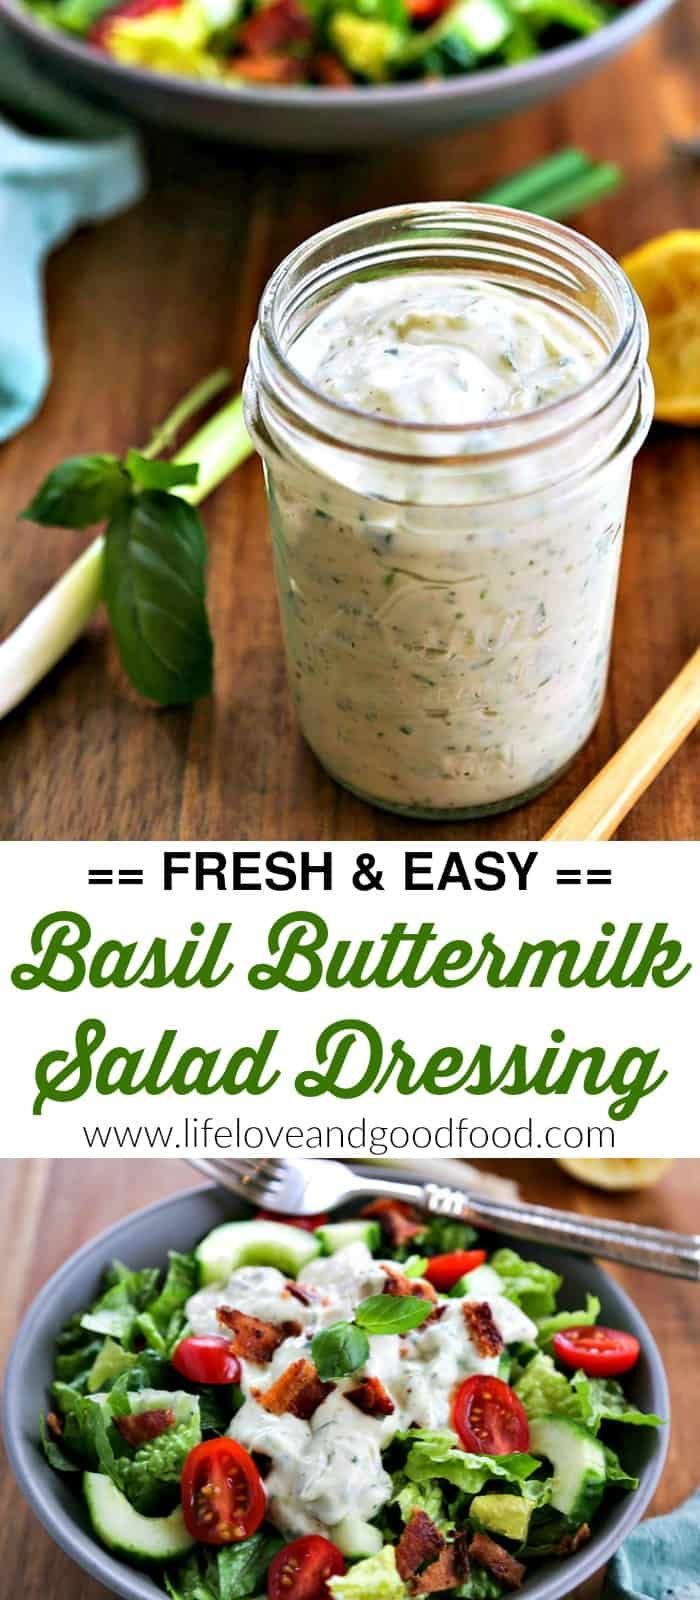 Basil Buttermilk Dressing Welcome Spring With Fresh Salads Topped With A Delicious Homemade Buttermilk Salad Dressing Vinaigrette Recipes Buttermilk Dressing